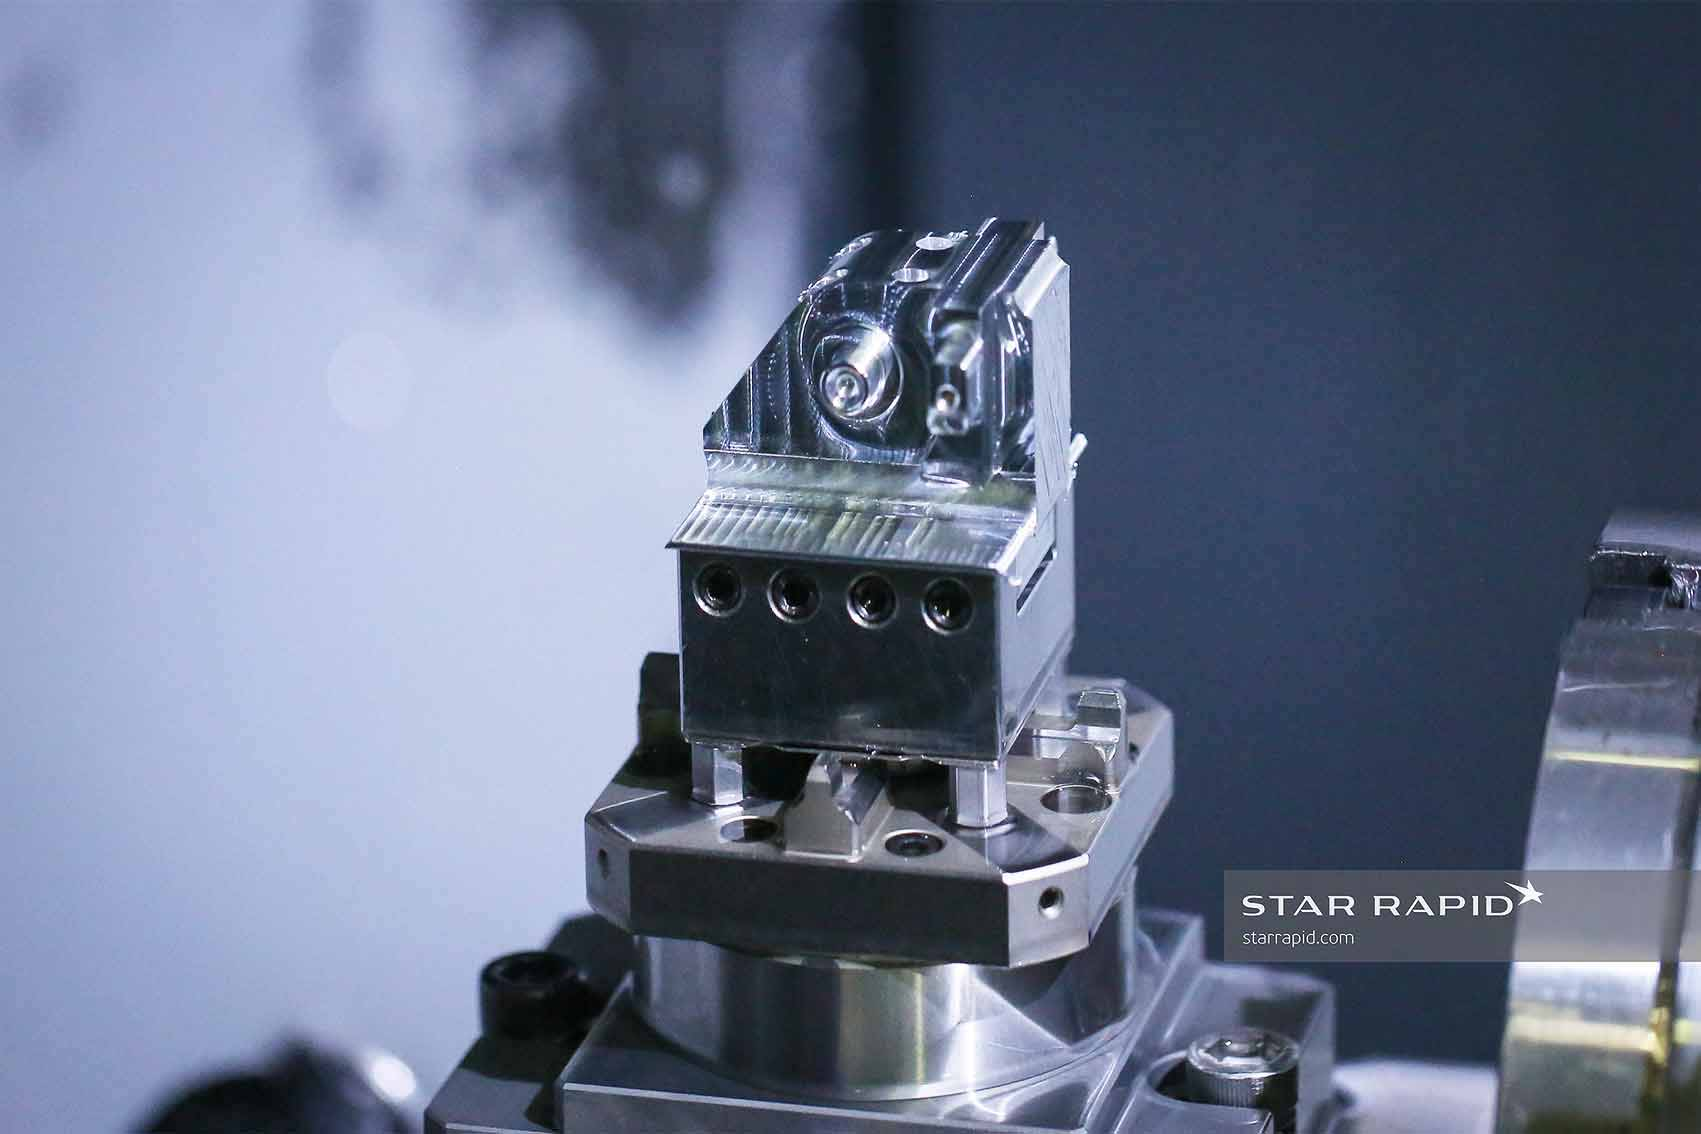 4-Axis CNC milling